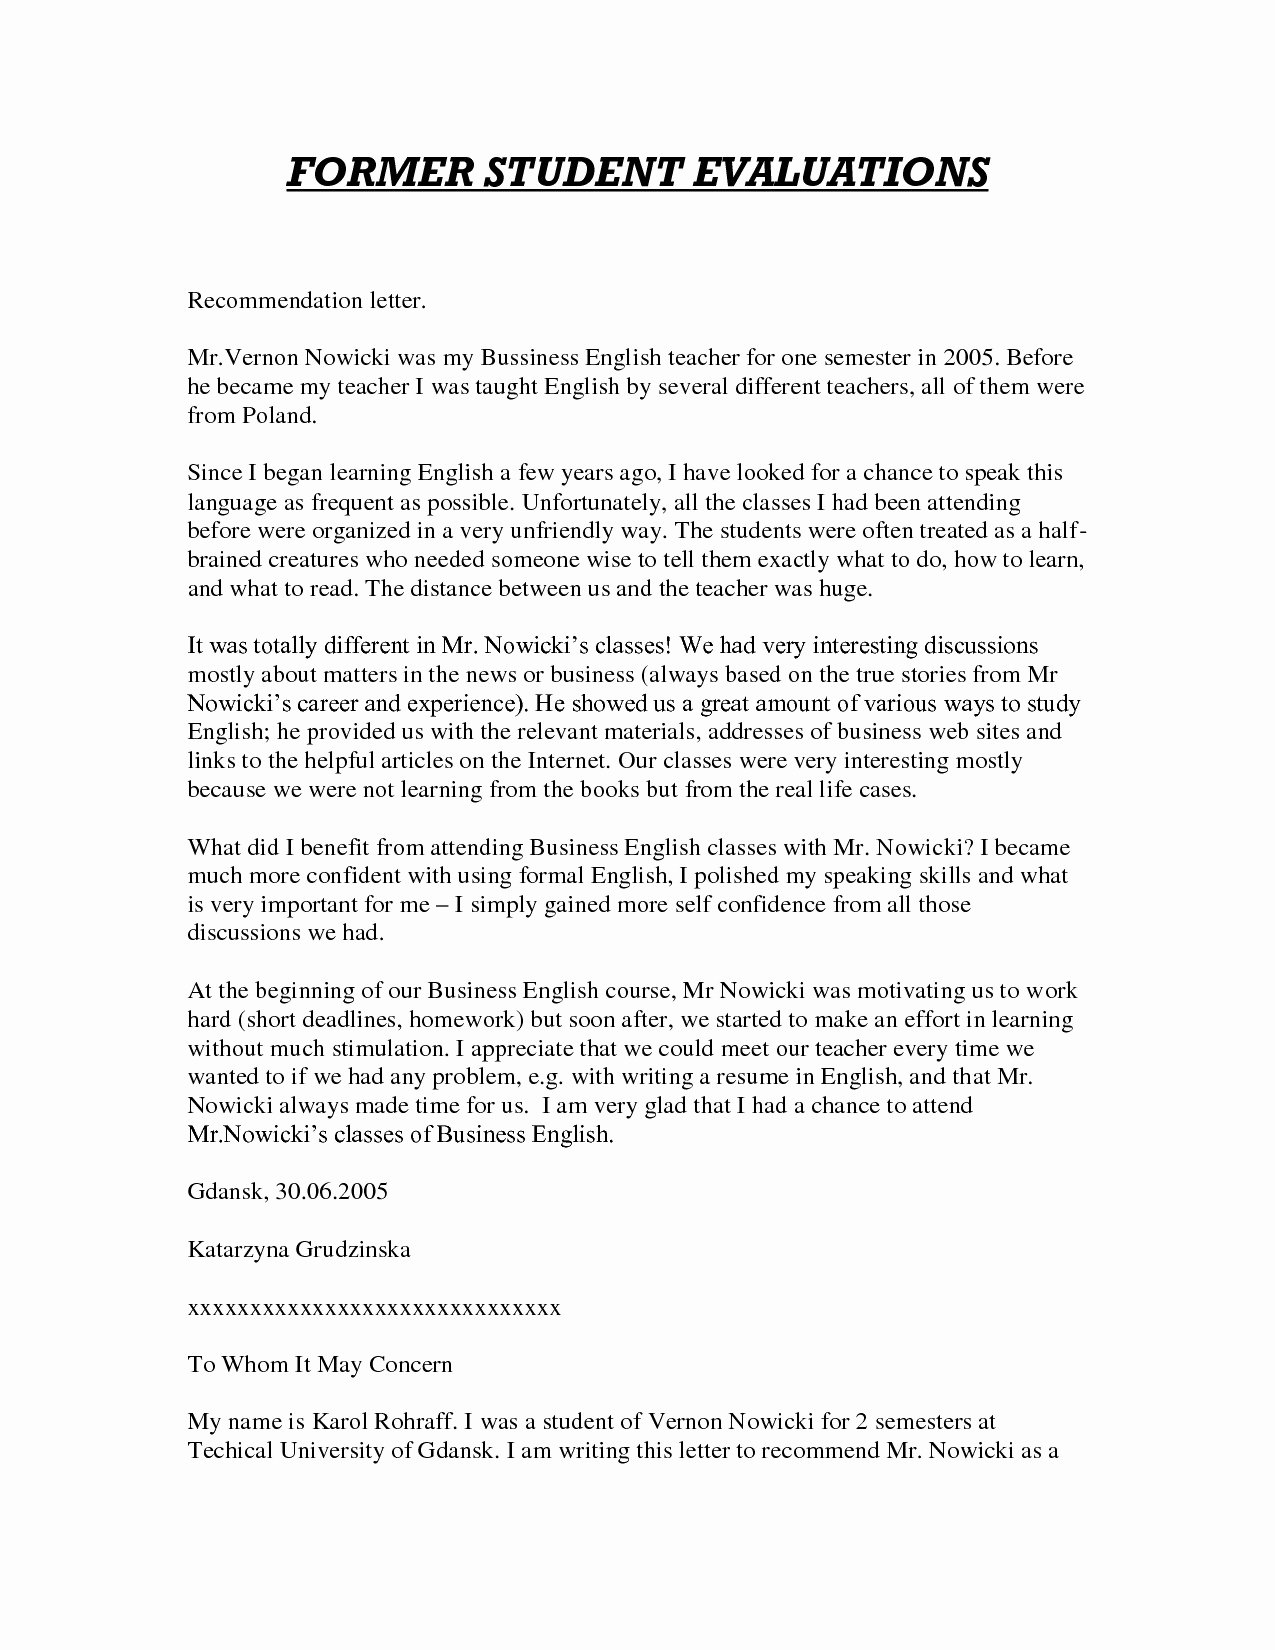 Teacher Recommendation Letter Samples Lovely Teacher Reference Letter Template Samples